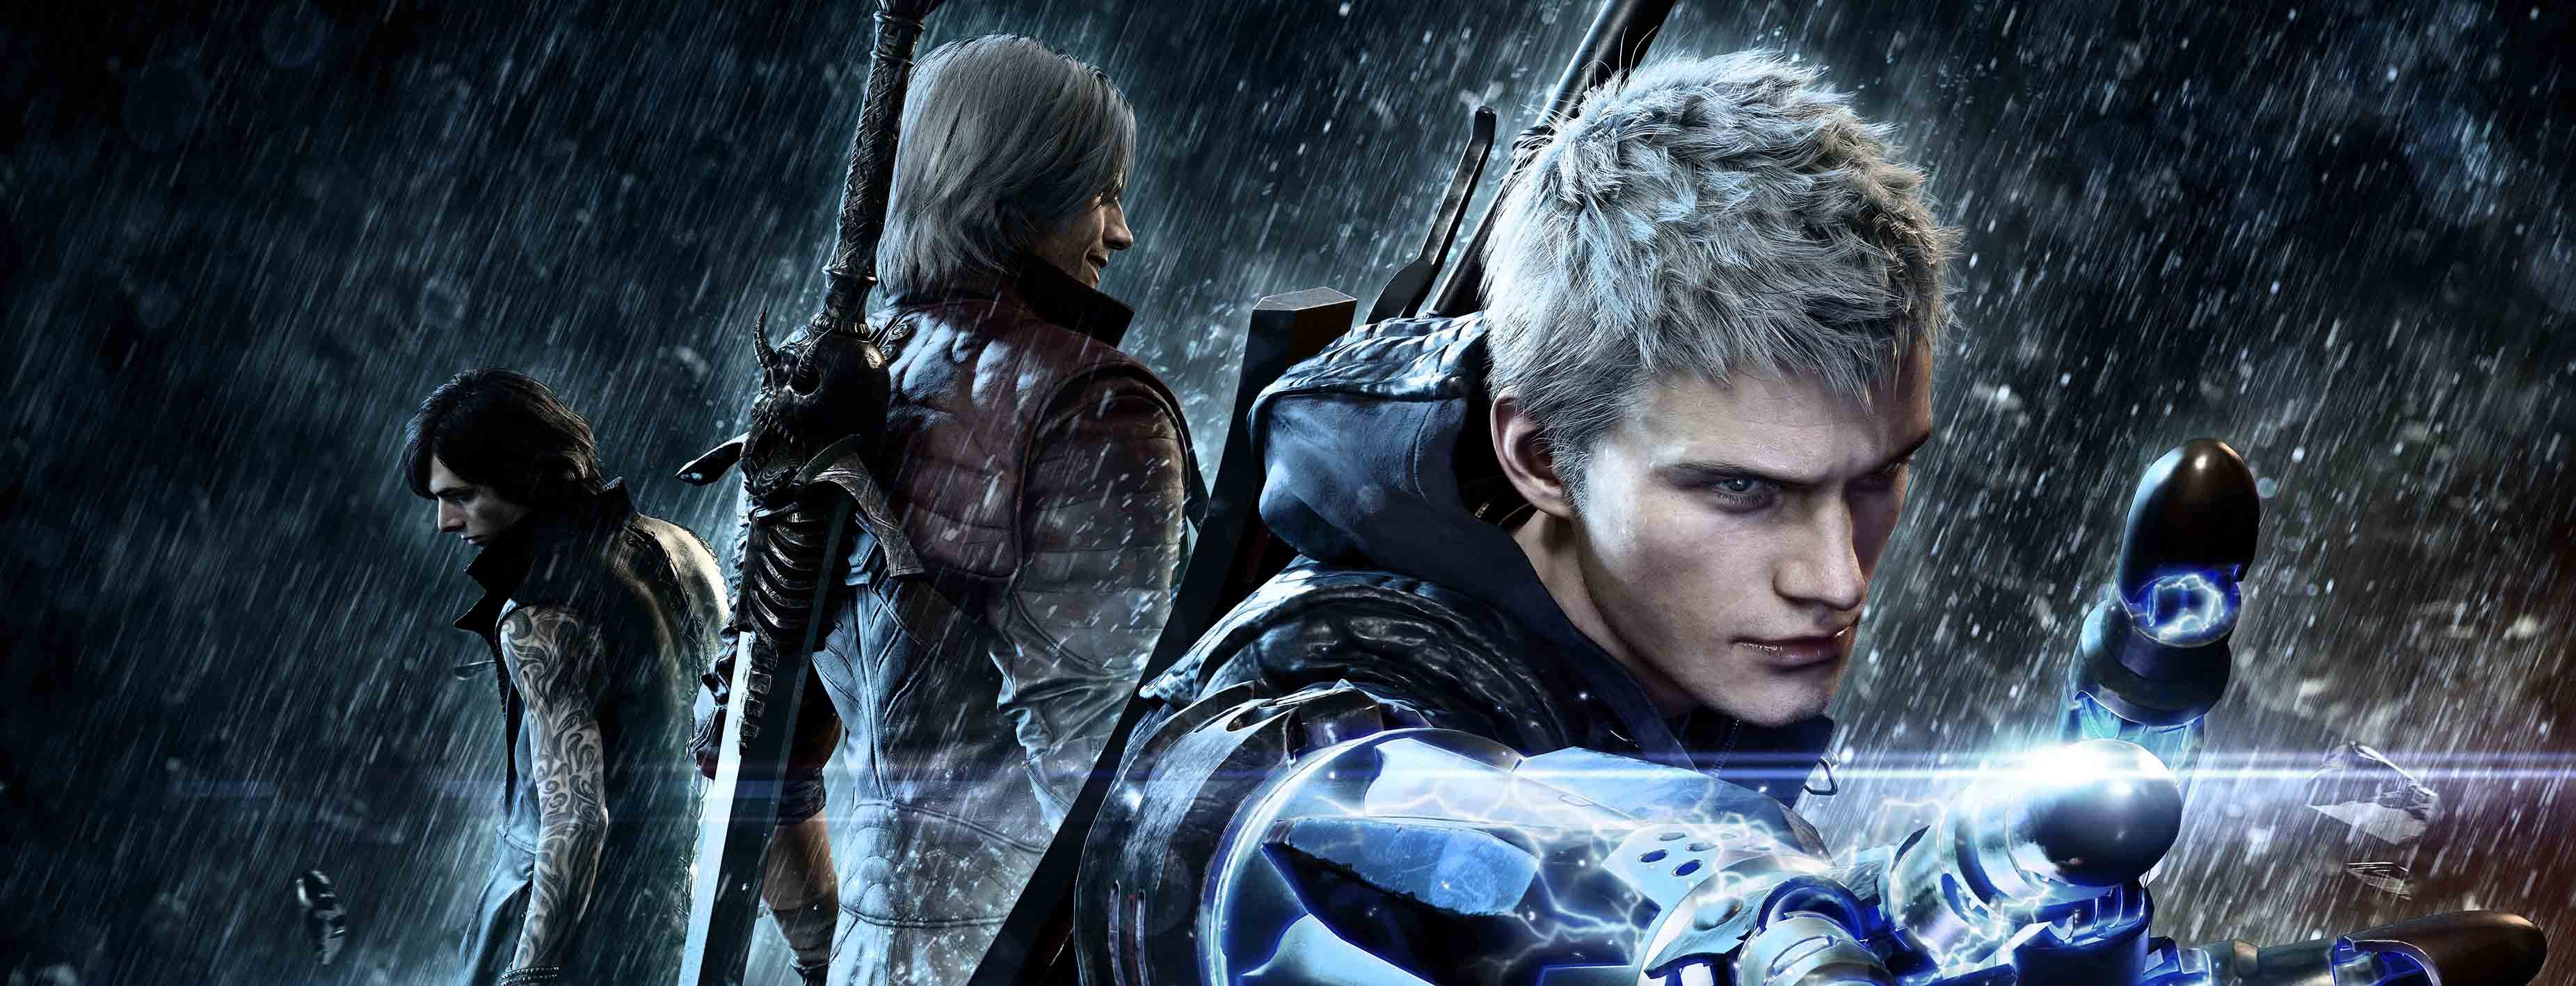 Devil May Cry 5 Wallpaper: Massive 5-Disc Soundtrack For 'Devil May Cry 5' Hits March